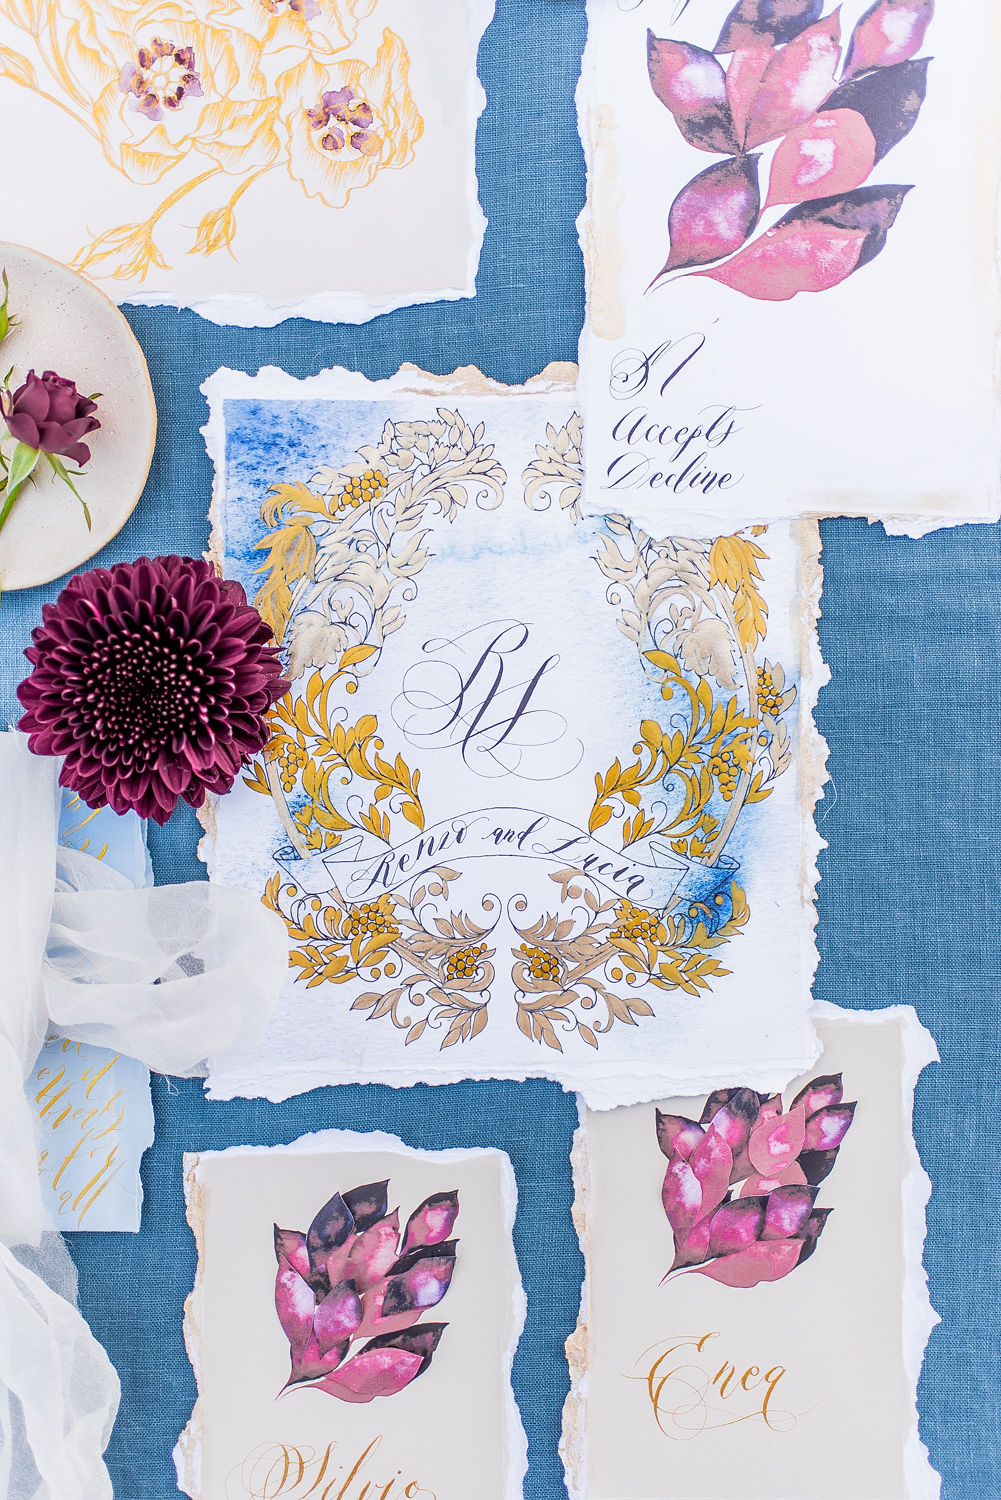 Vow Renewal Invitations blue and gold wedding invitations with red accents